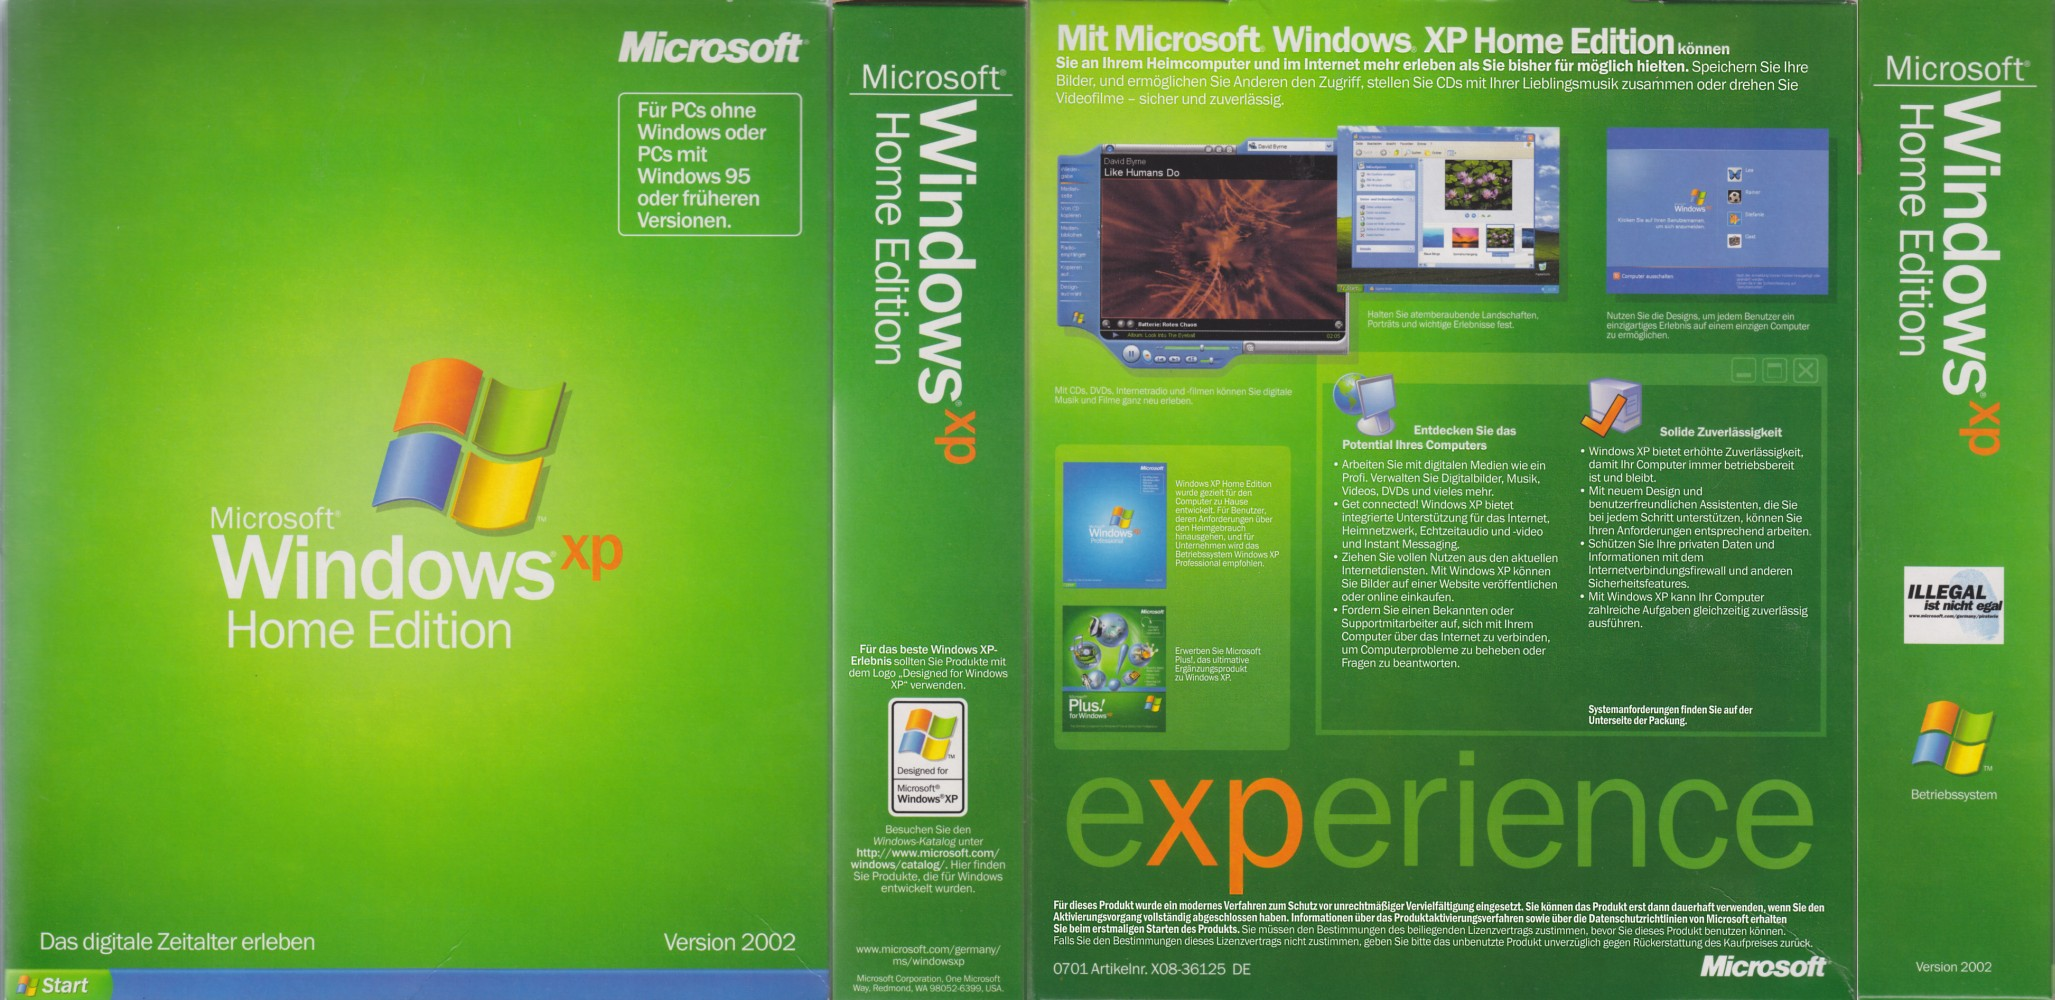 Windows xp sp2 professional corp iso download : samecen